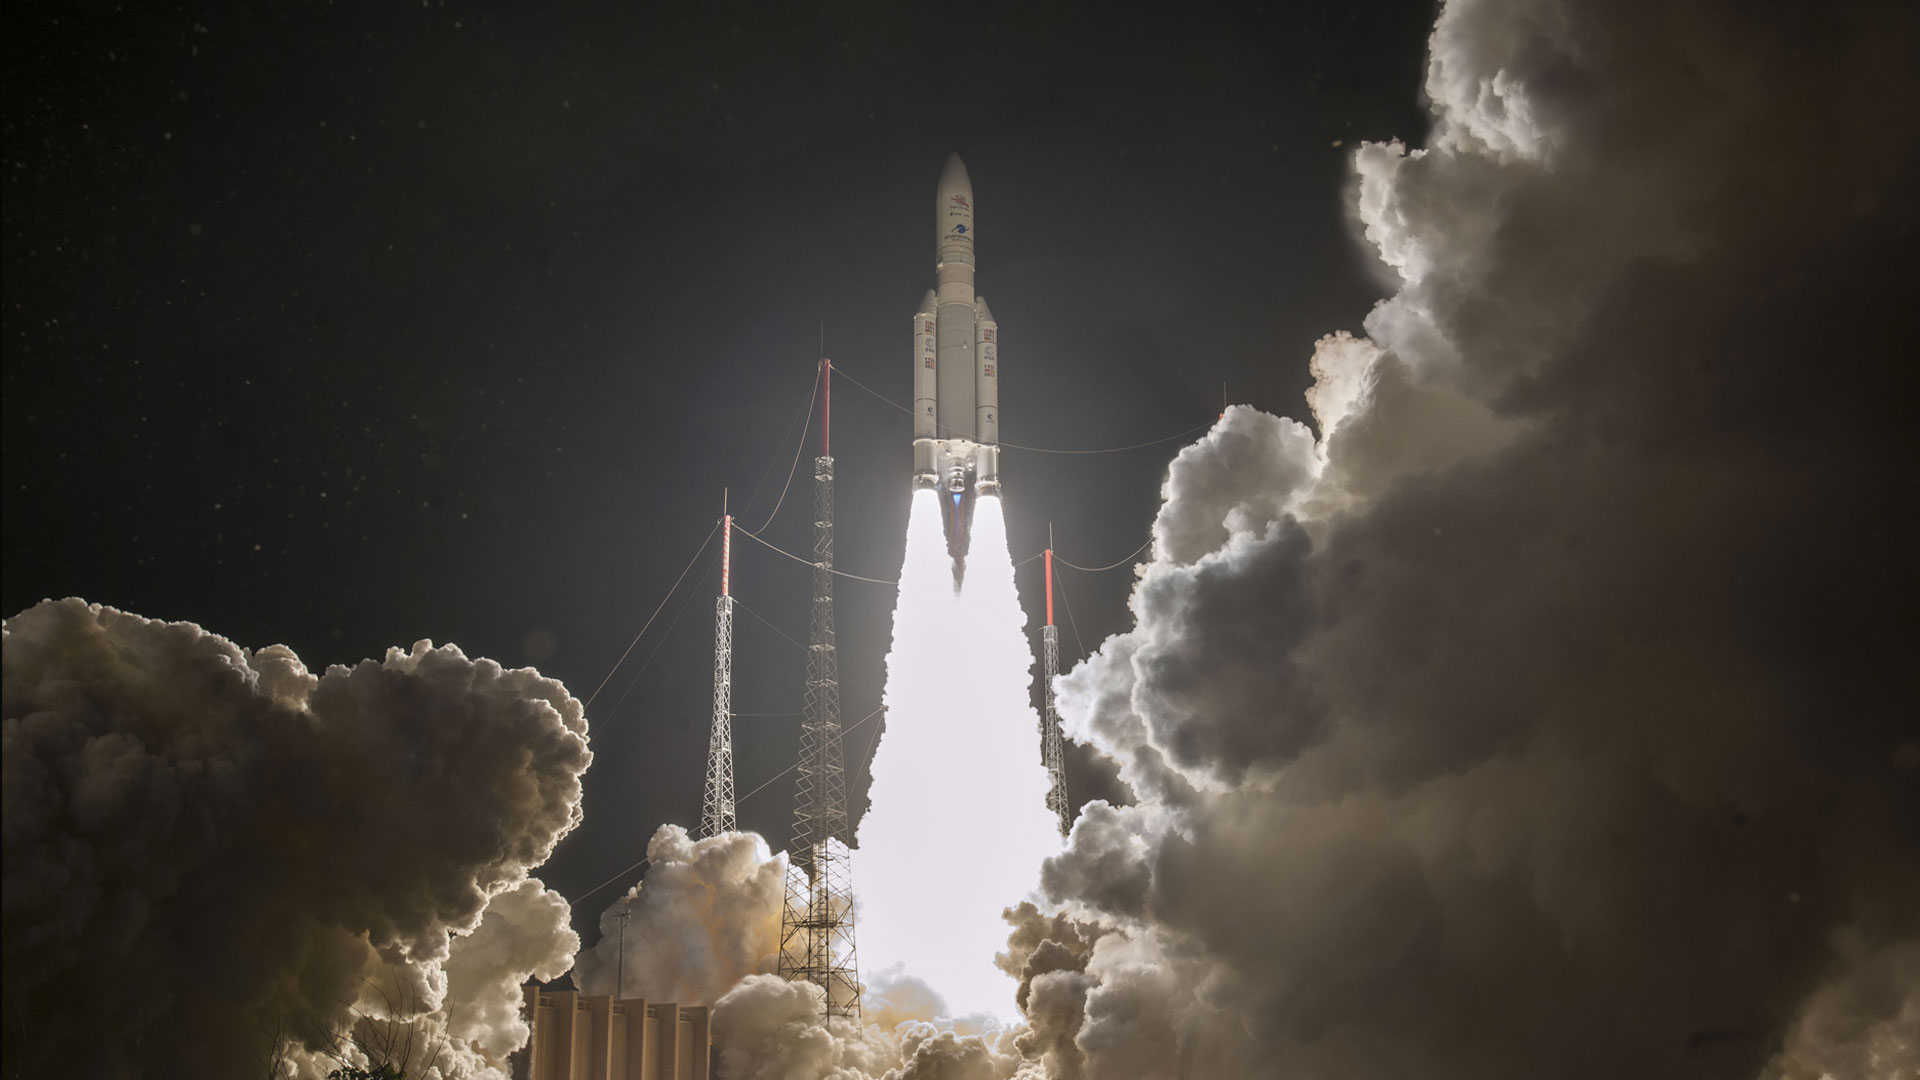 Ariane 5 Launches BepiColombo on its way to Mercury